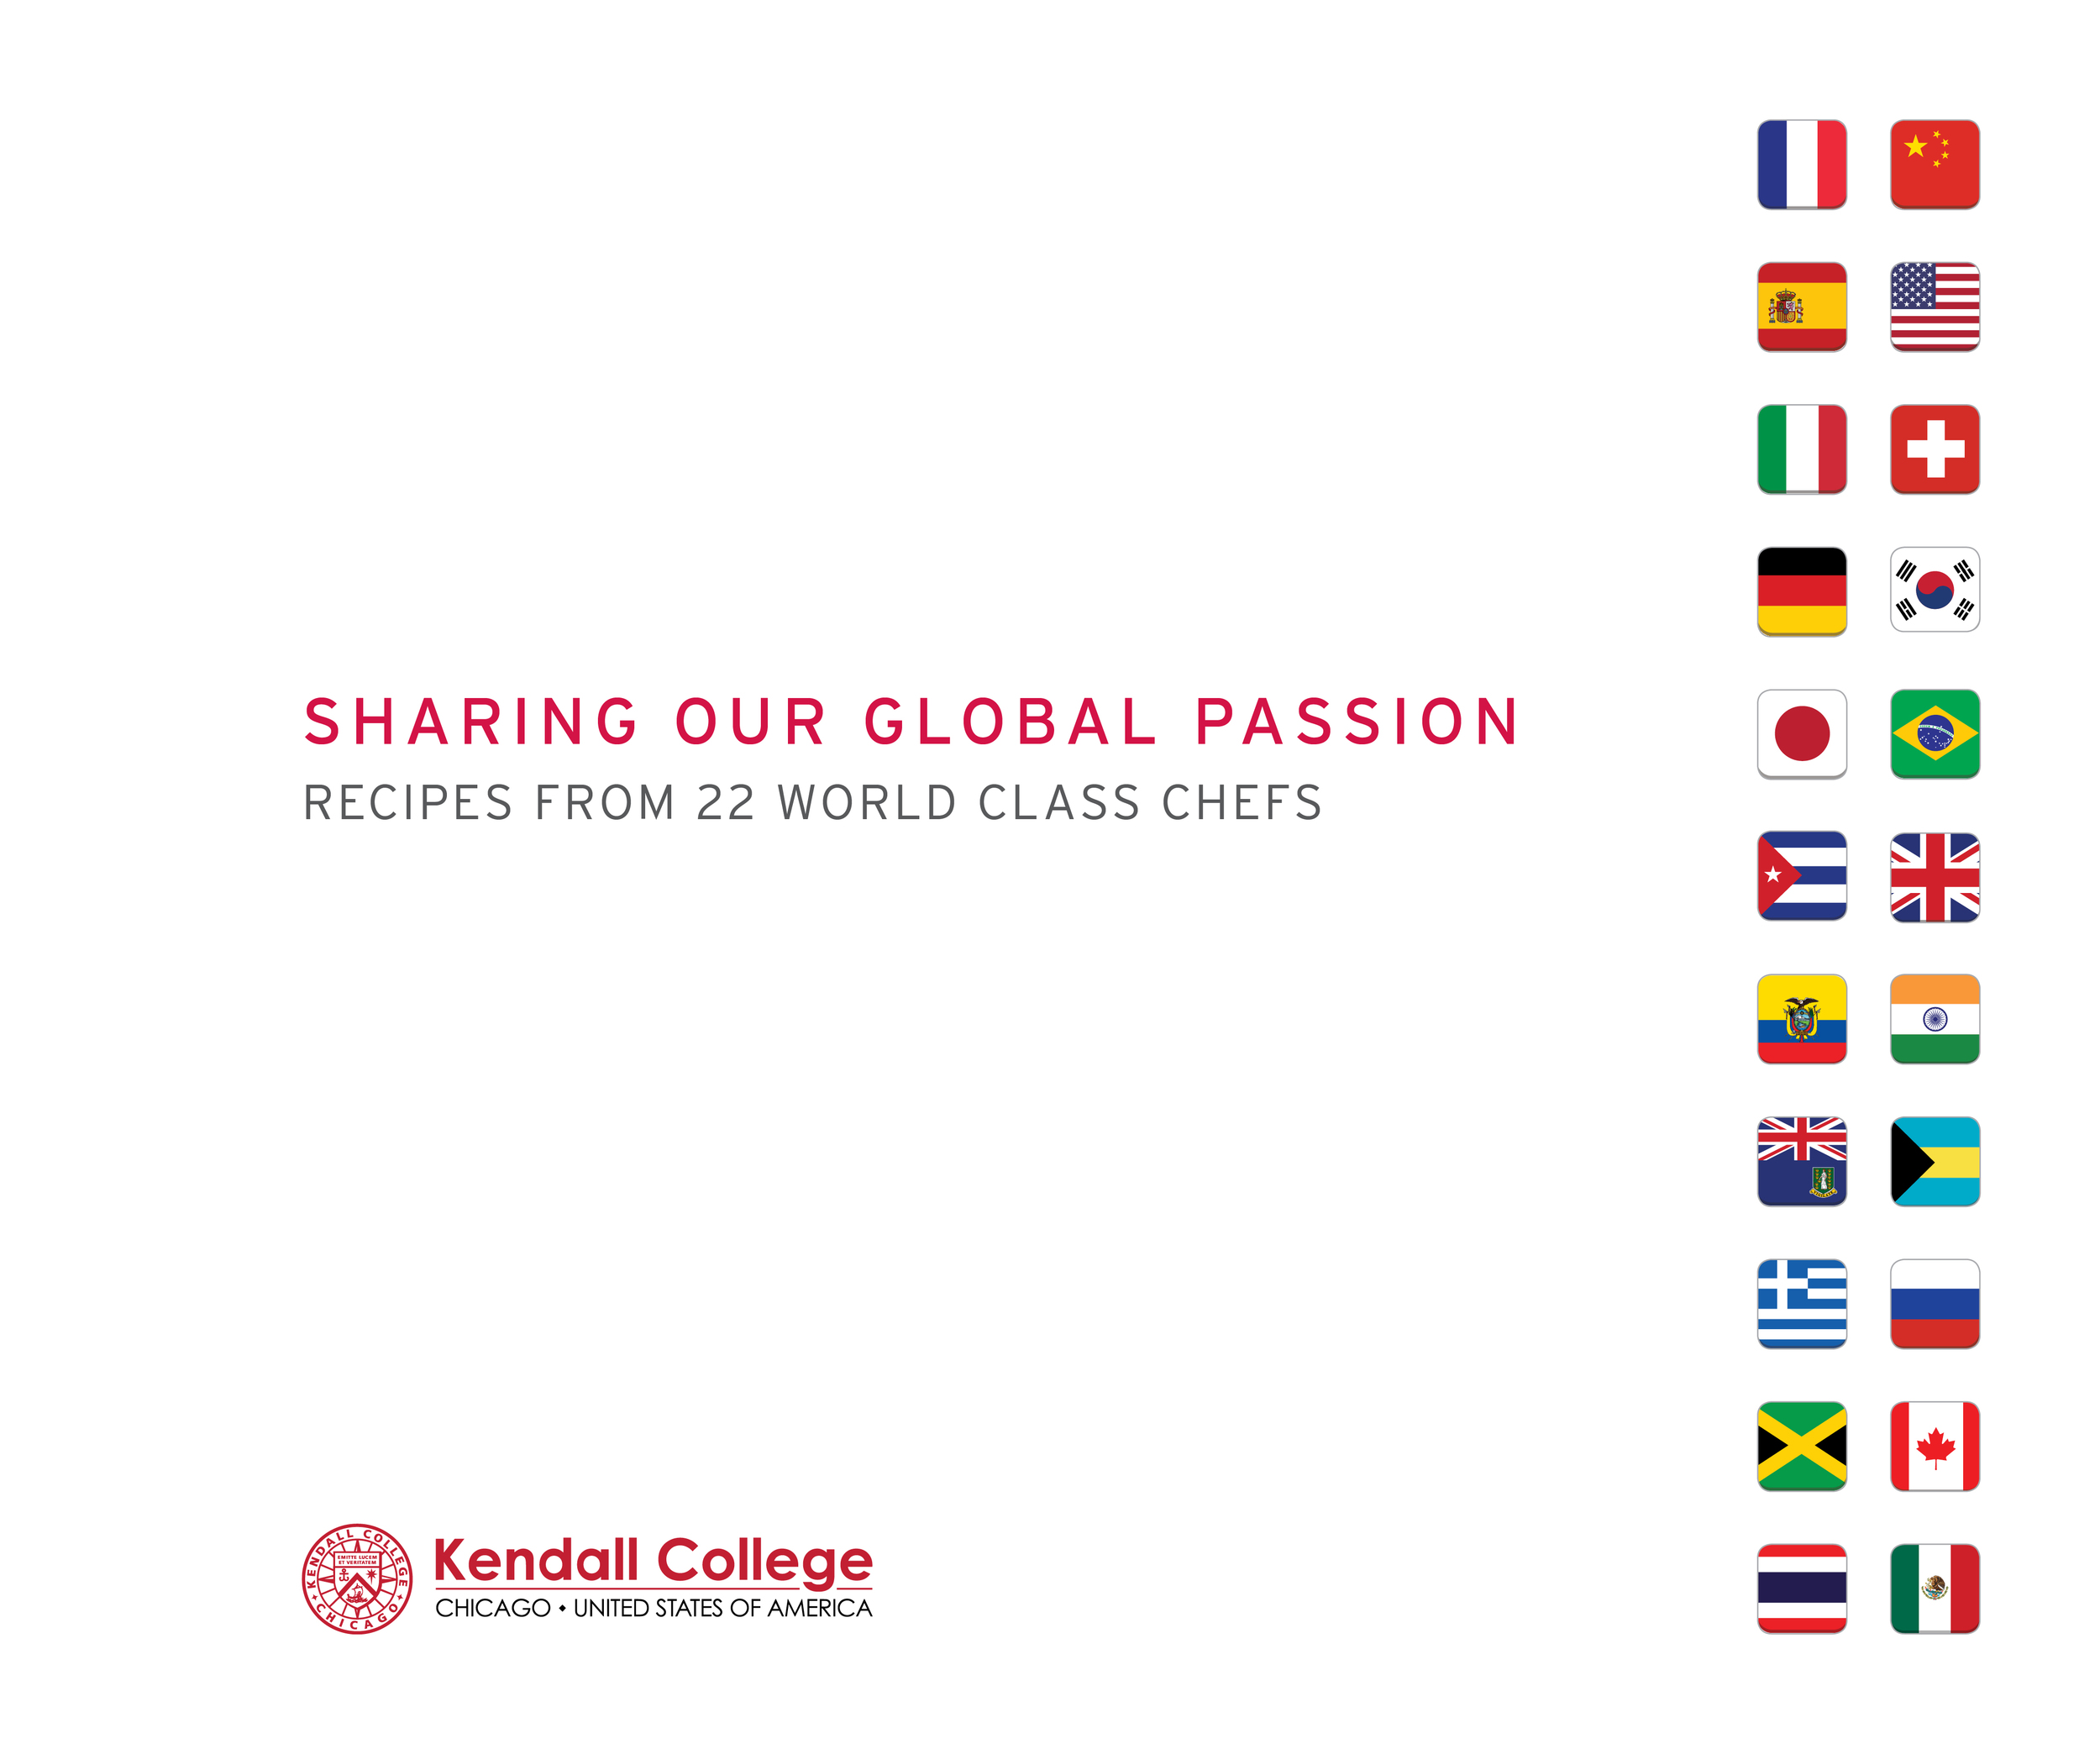 SHARING OUR GLOBAL PASSION COOKBOOK